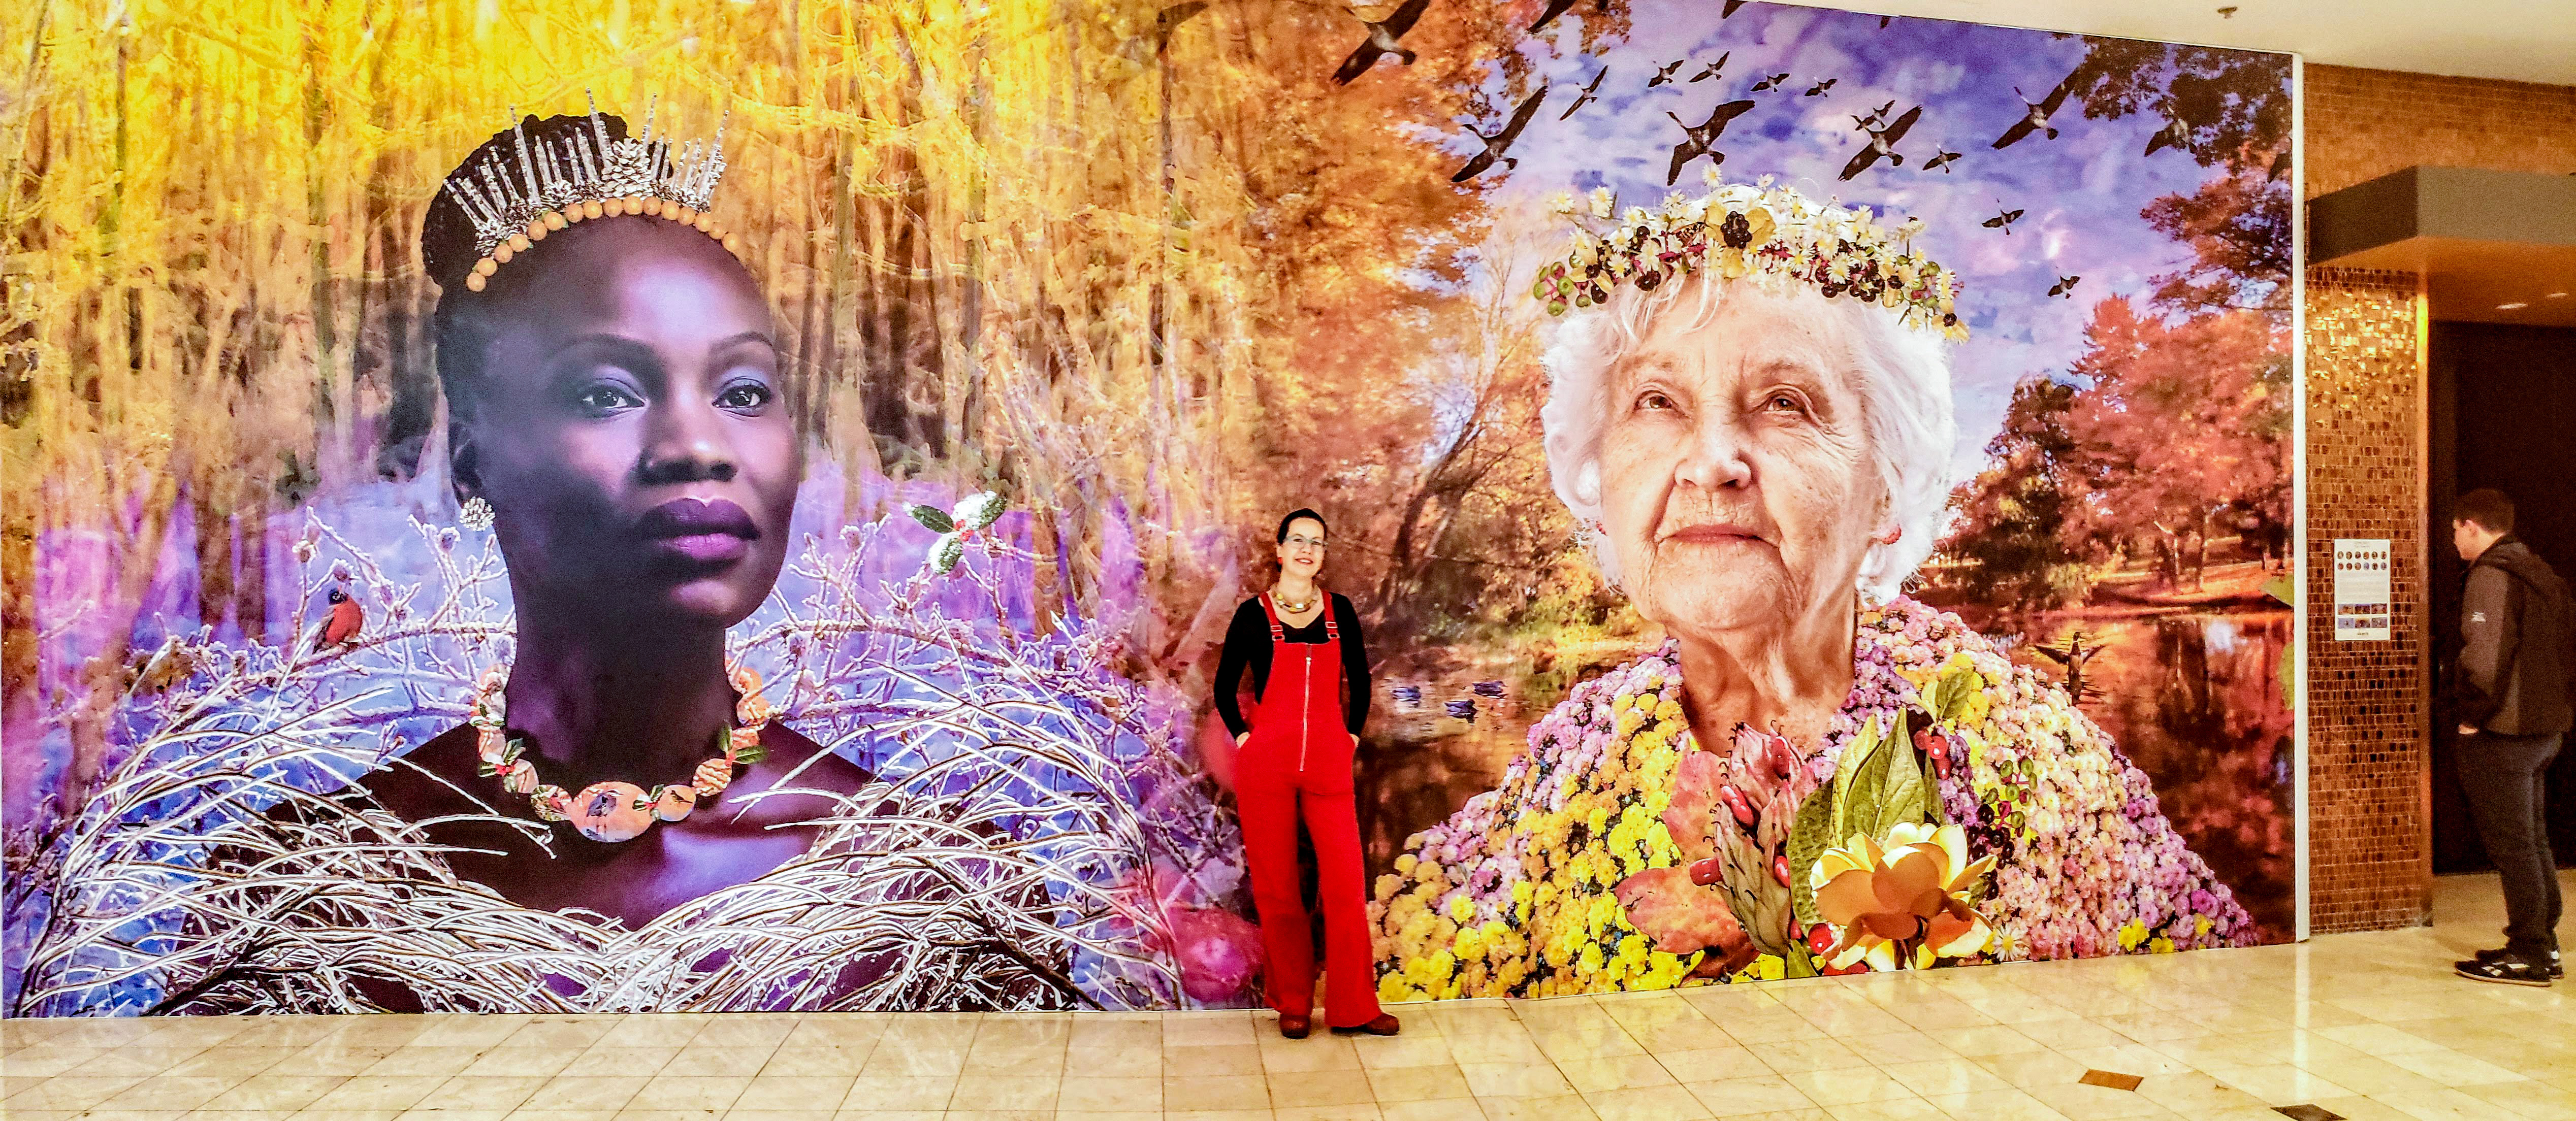 Mid Winter and Late Autumn mural at Westfield Montgomery Mall